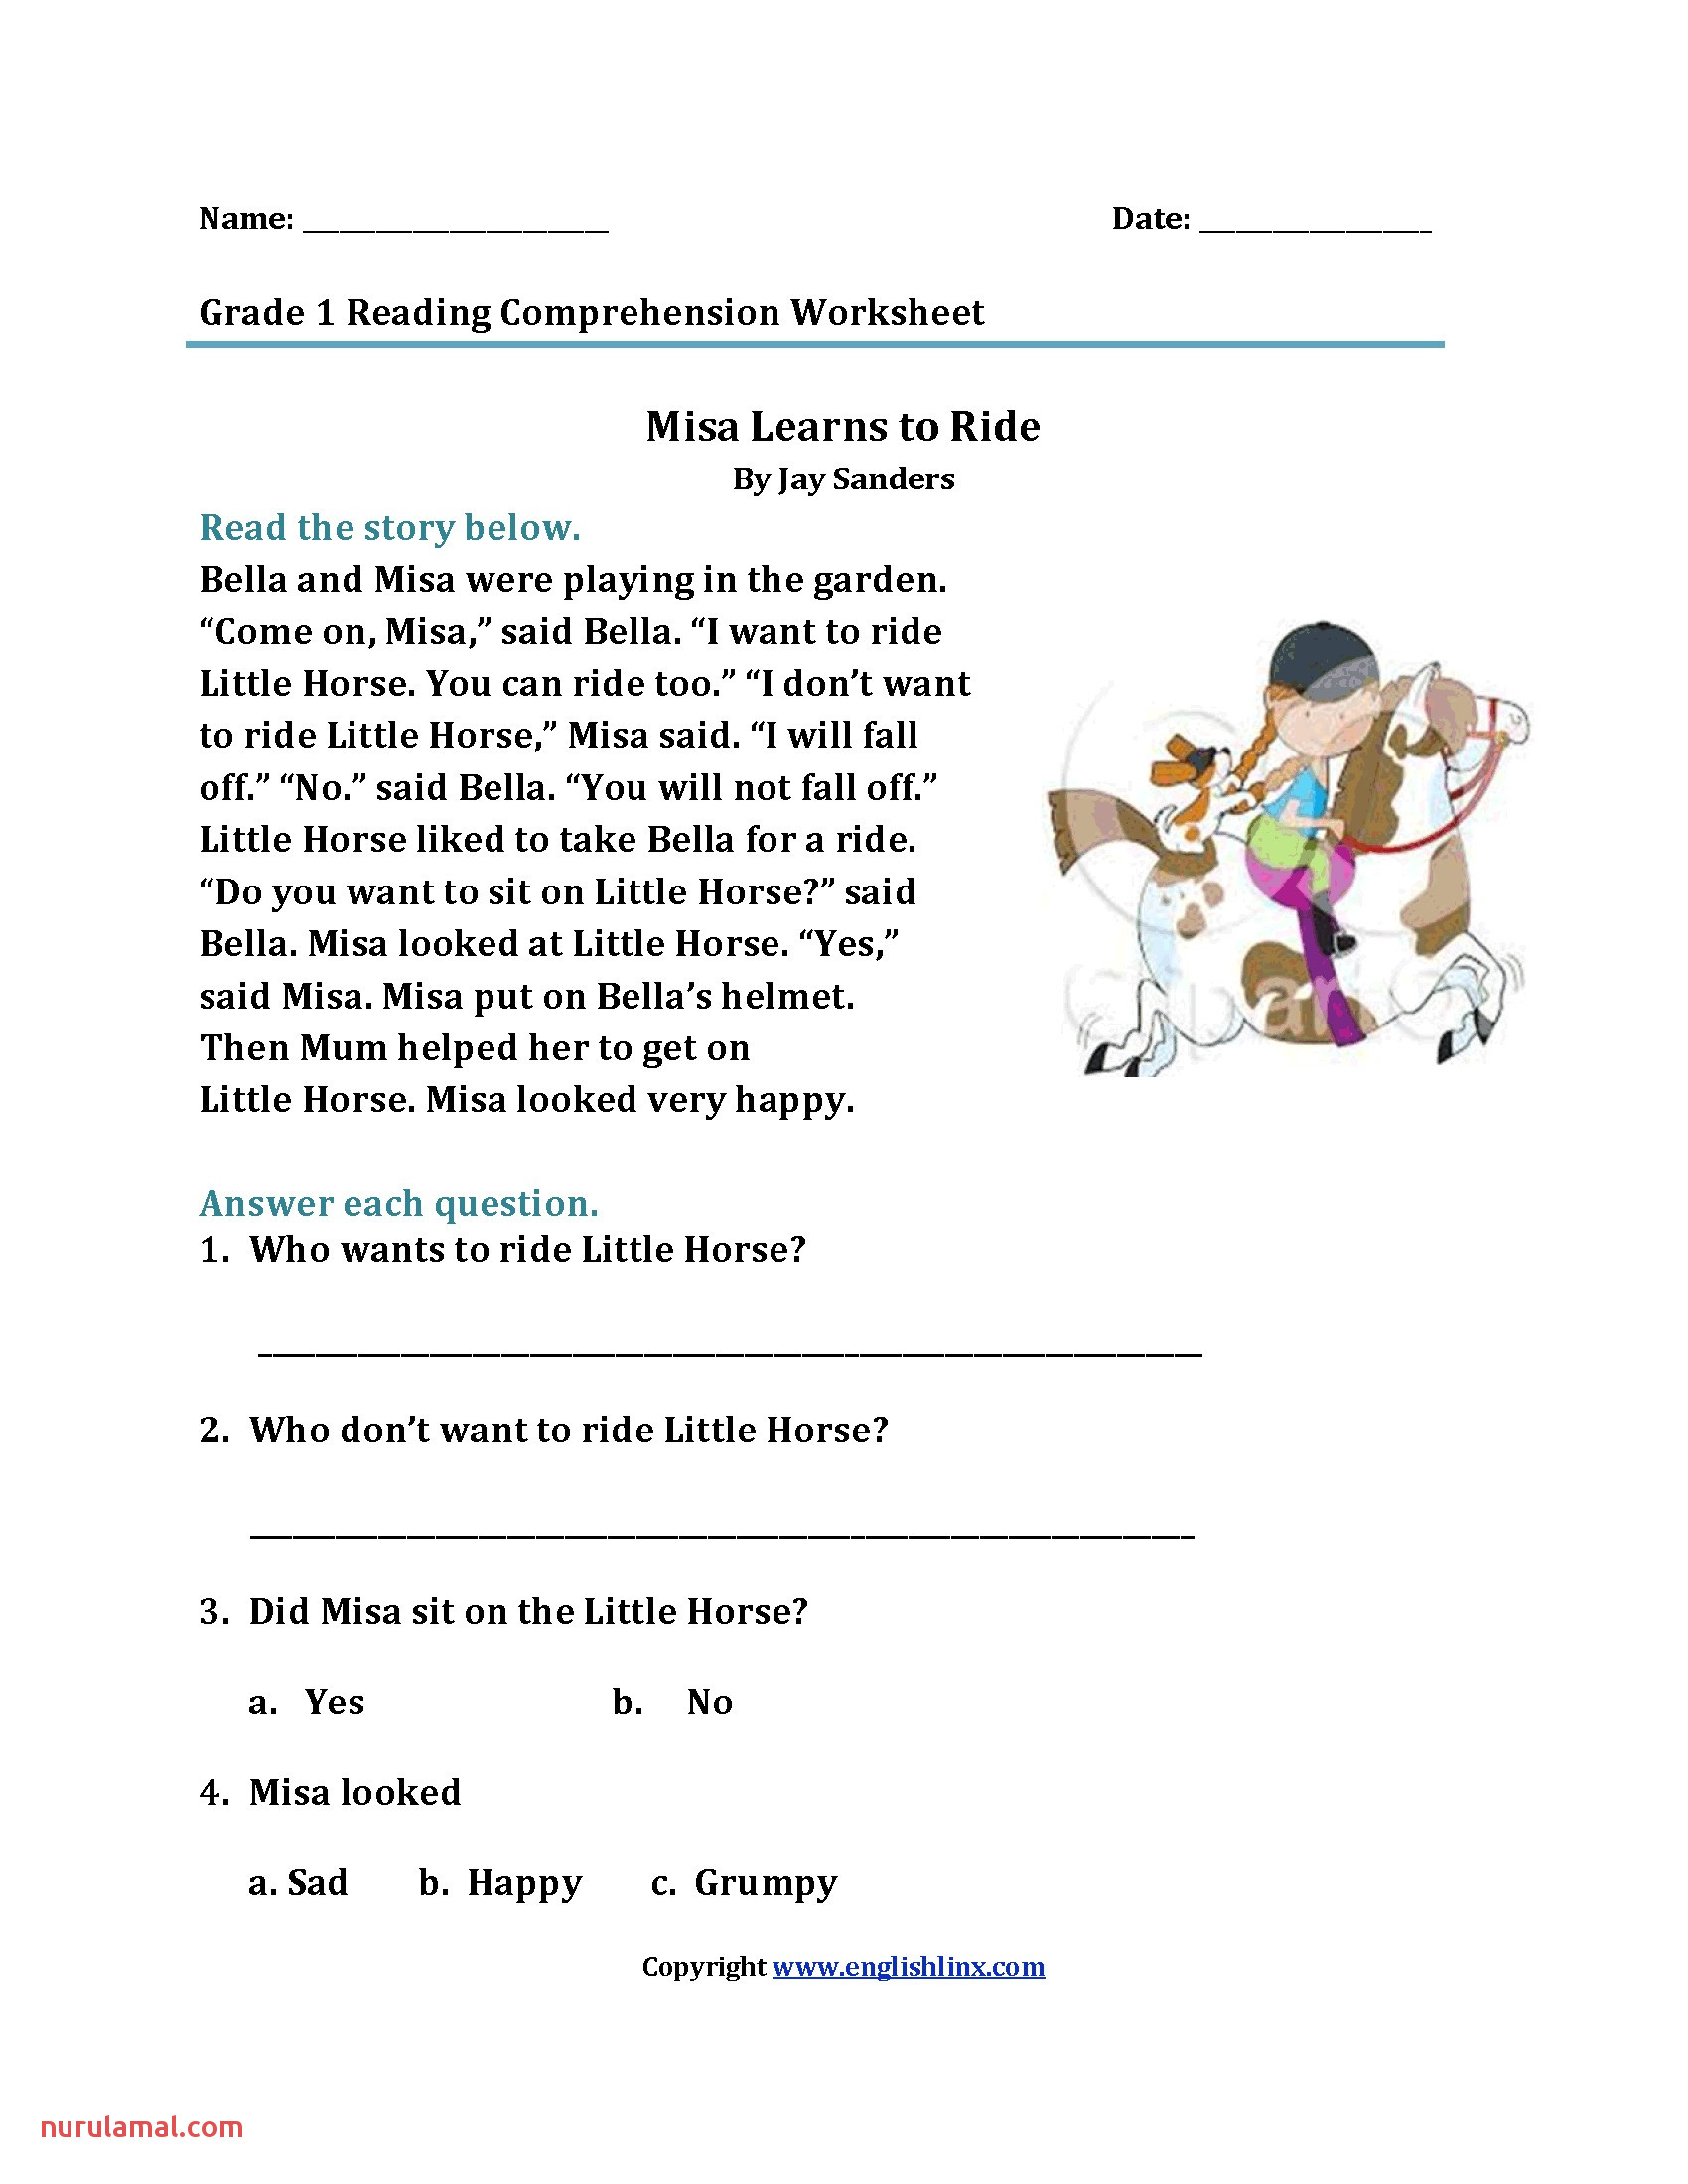 worksheet ideas outstanding free printable reading prehension worksheets 4th grade kindergarten english for 1st speed math first graders ch purple preschool and activities kids sample